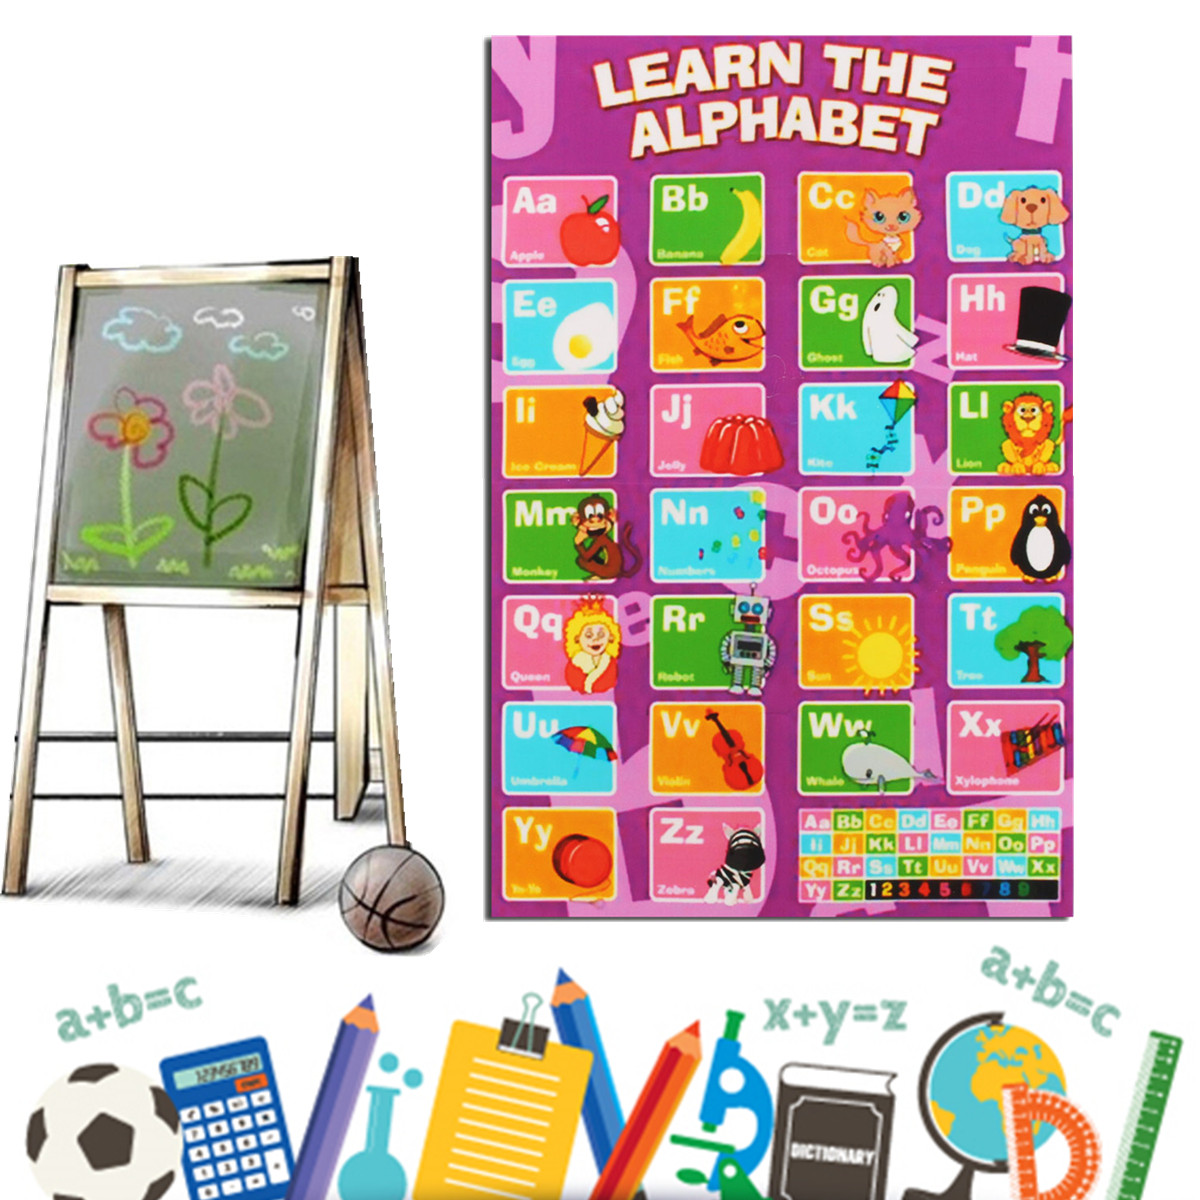 ABC Kids Education English Language A4 Art Alphabet Animal Poster Baby Early Learning Silk Light Canvas Painting Home Decor